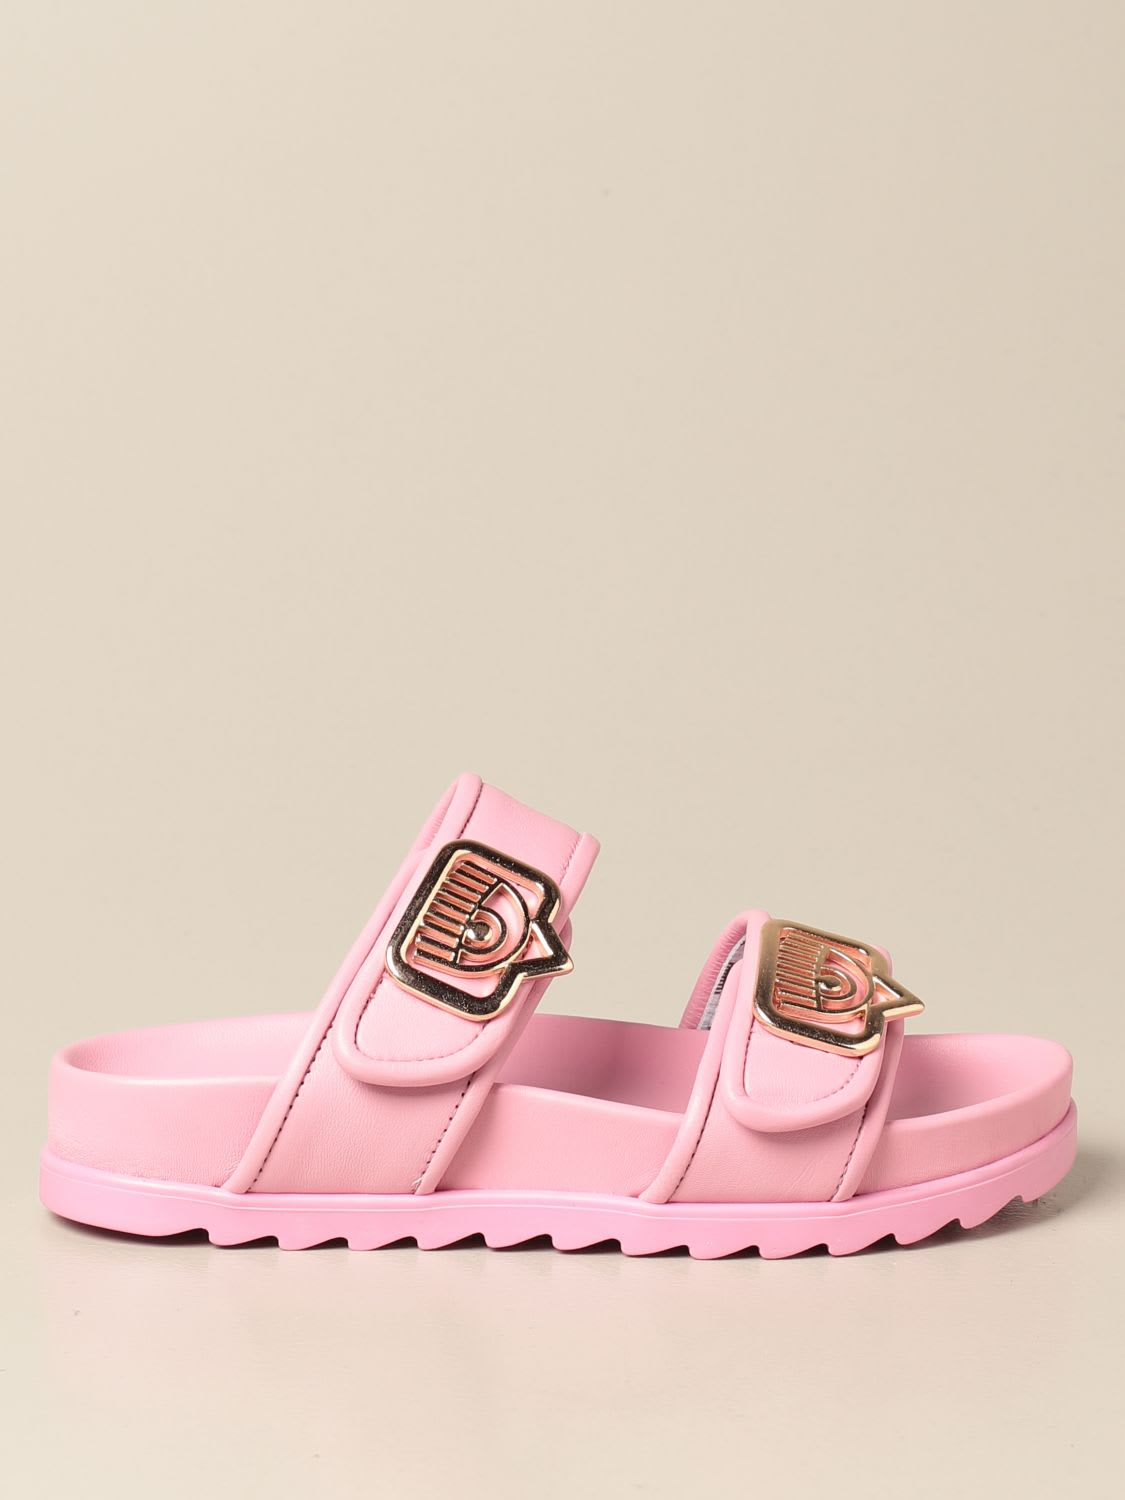 Chiara Ferragni Leathers SANDALS IN ECO-LEATHER WITH LOGO